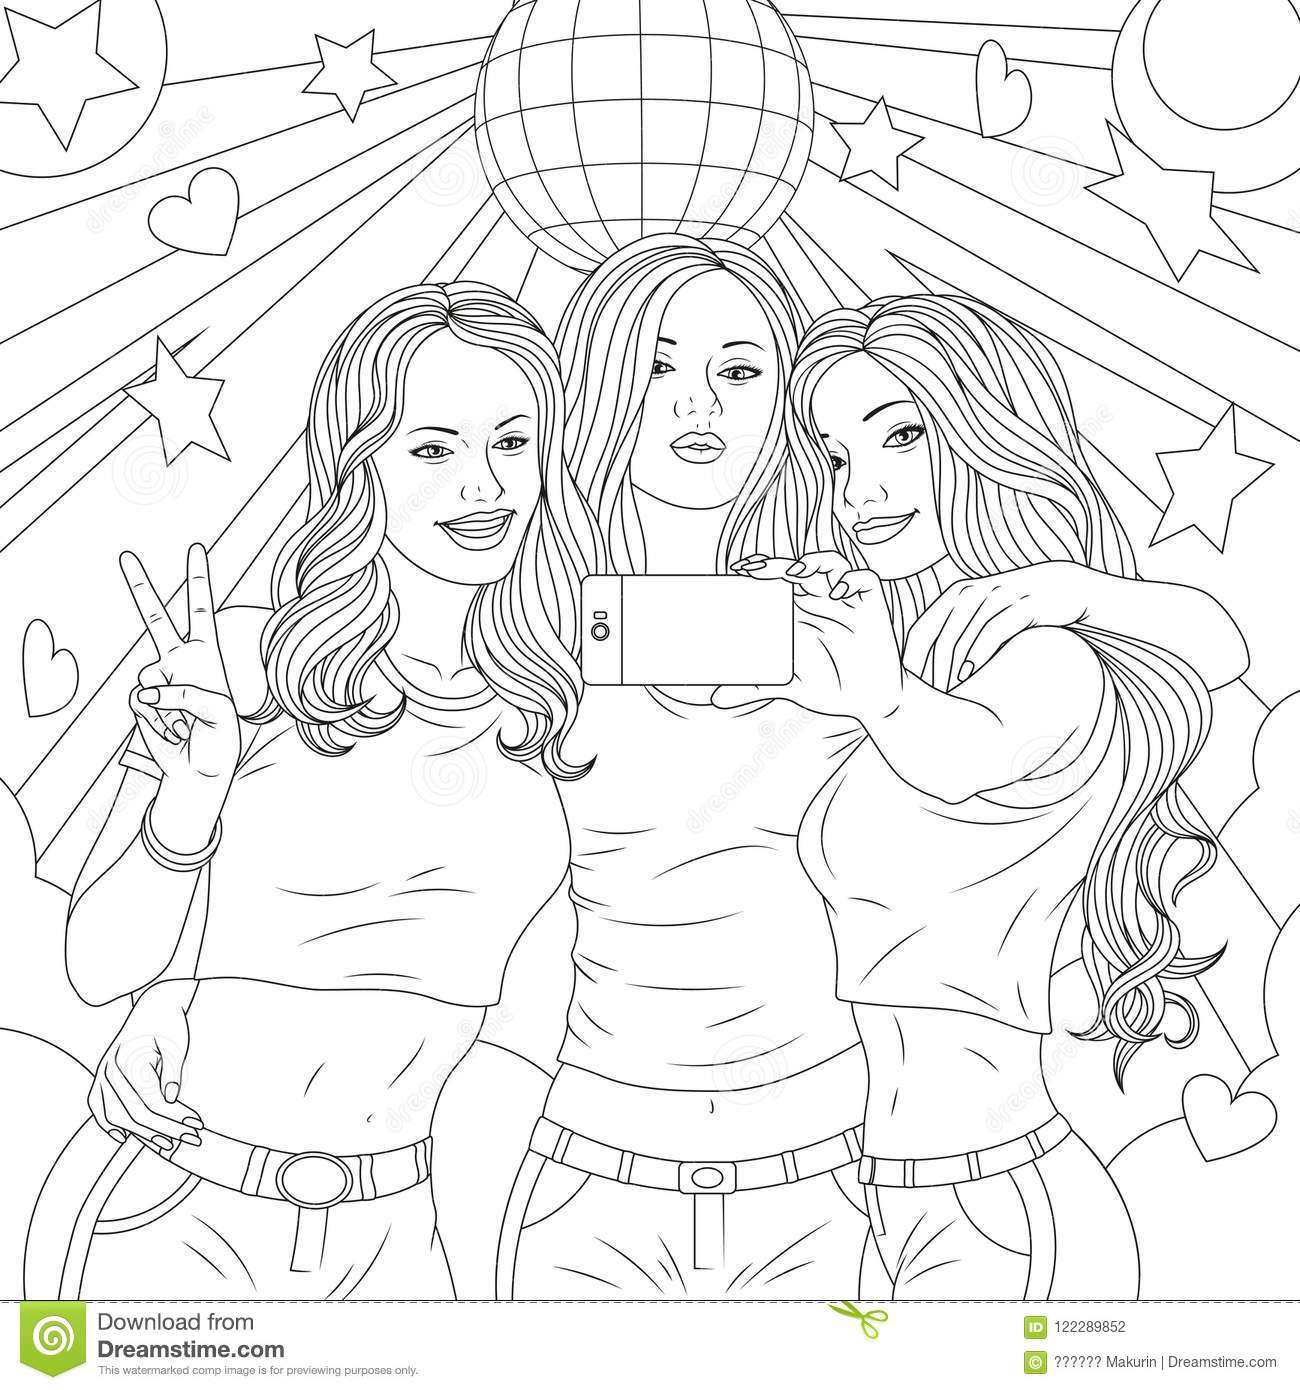 Pretty girl coloring pages - timeless-miracle.com   1390x1300